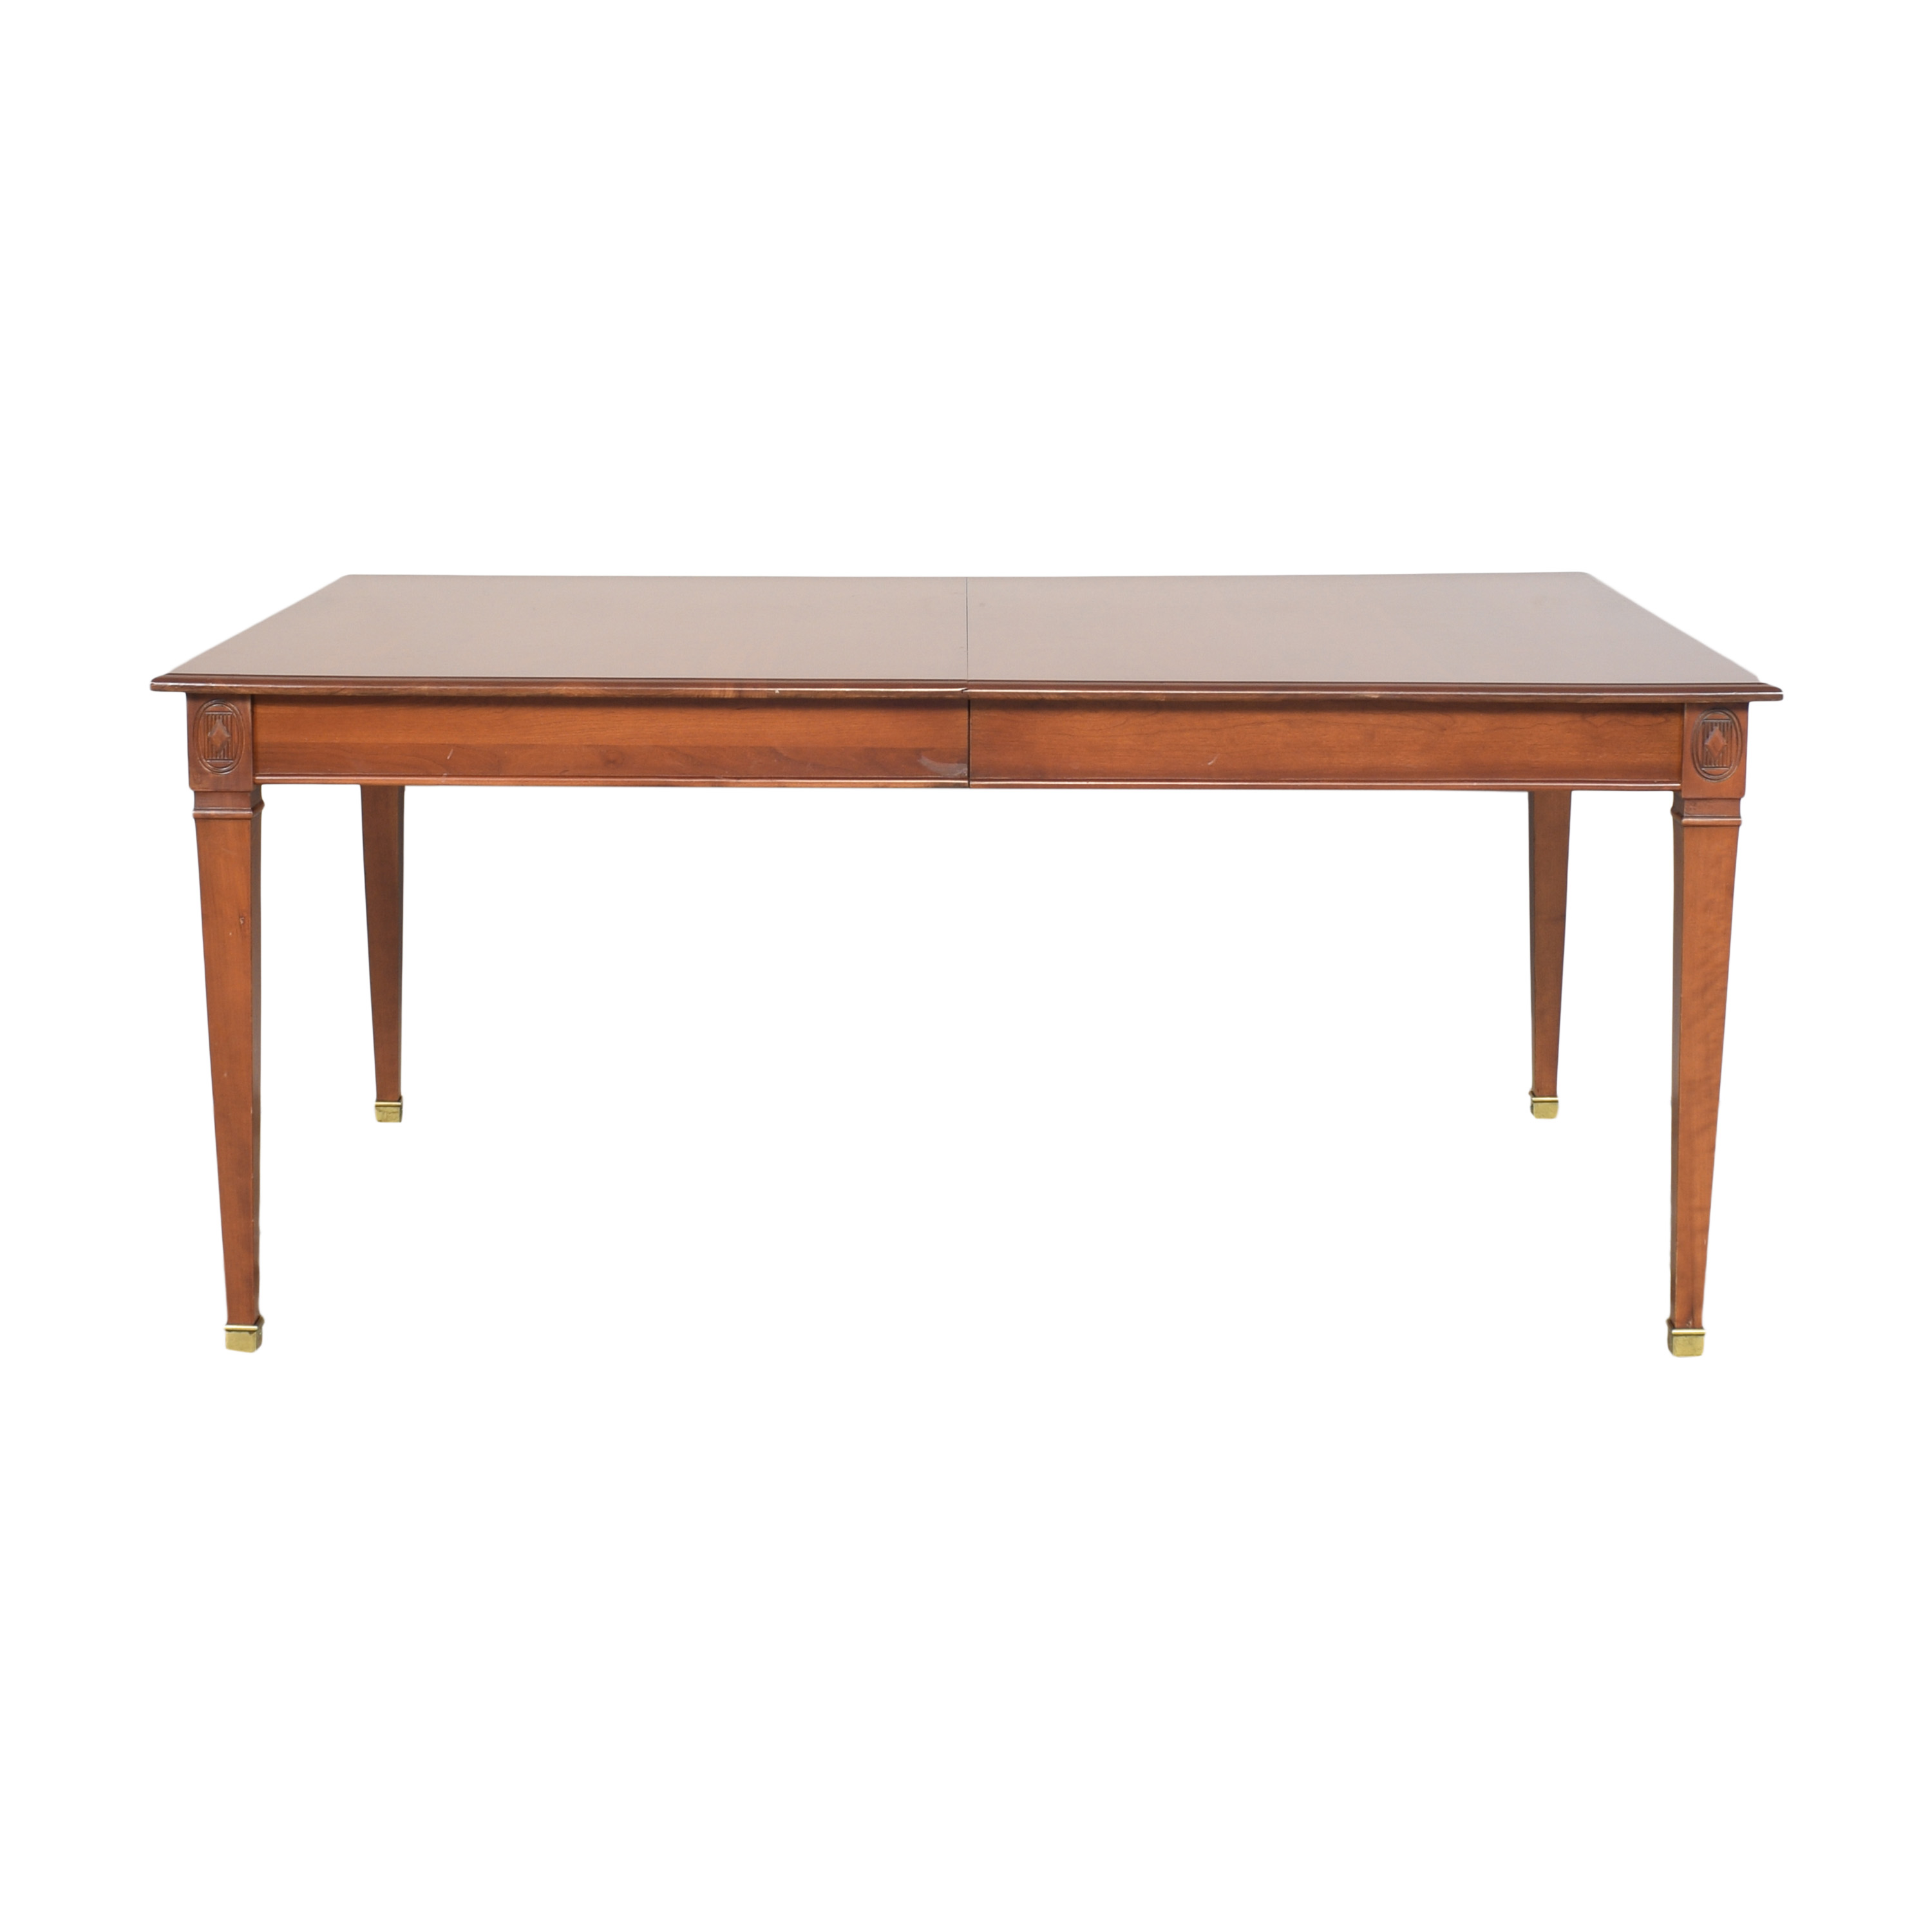 Harden Harden Extension Dining Table Dinner Tables